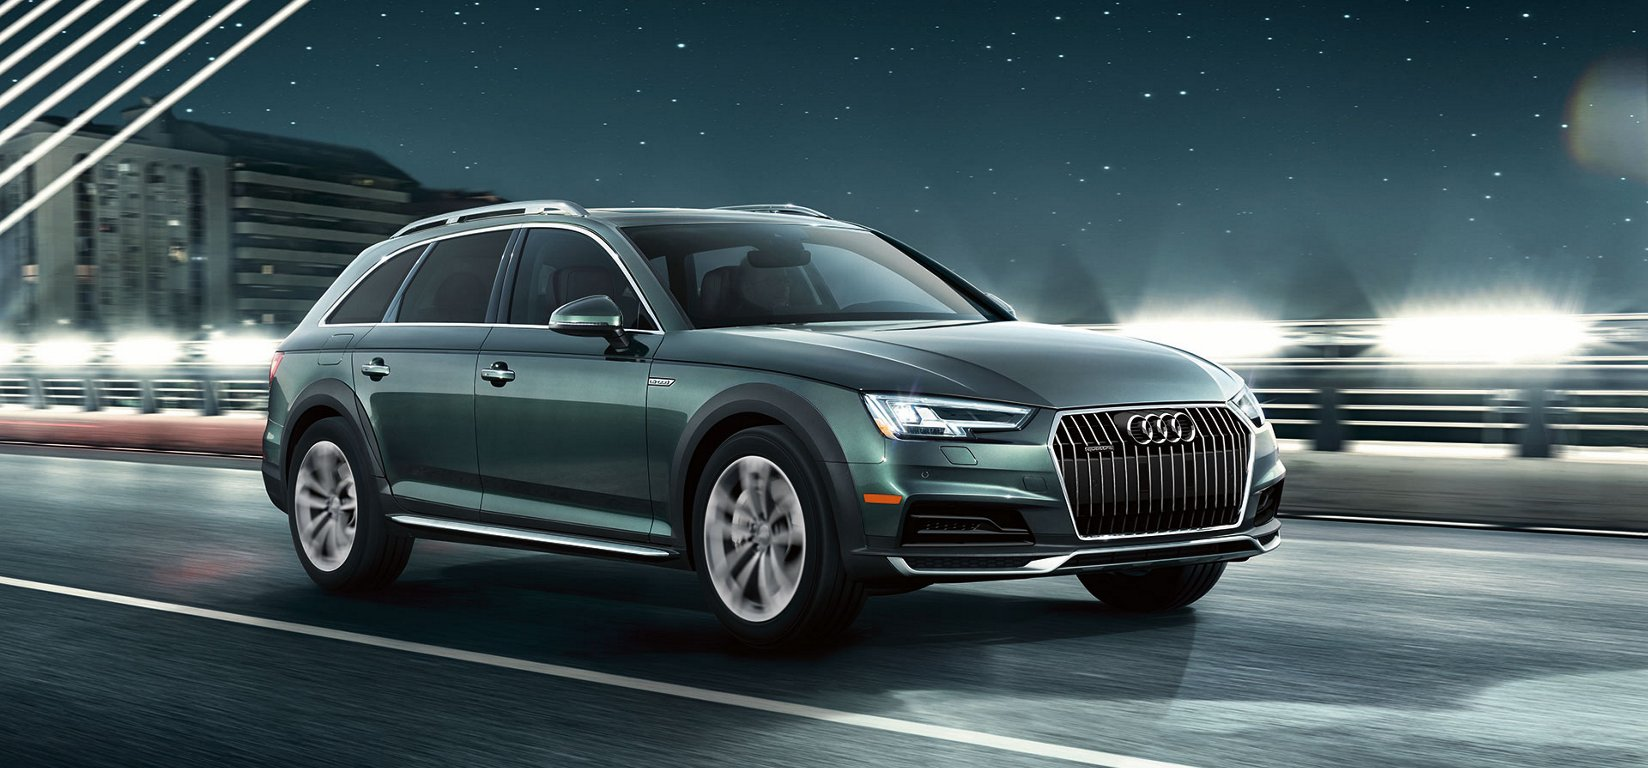 crop finance allroad exterior ca new wid sale specials lease and torrance audi fit hei headlights for price htm